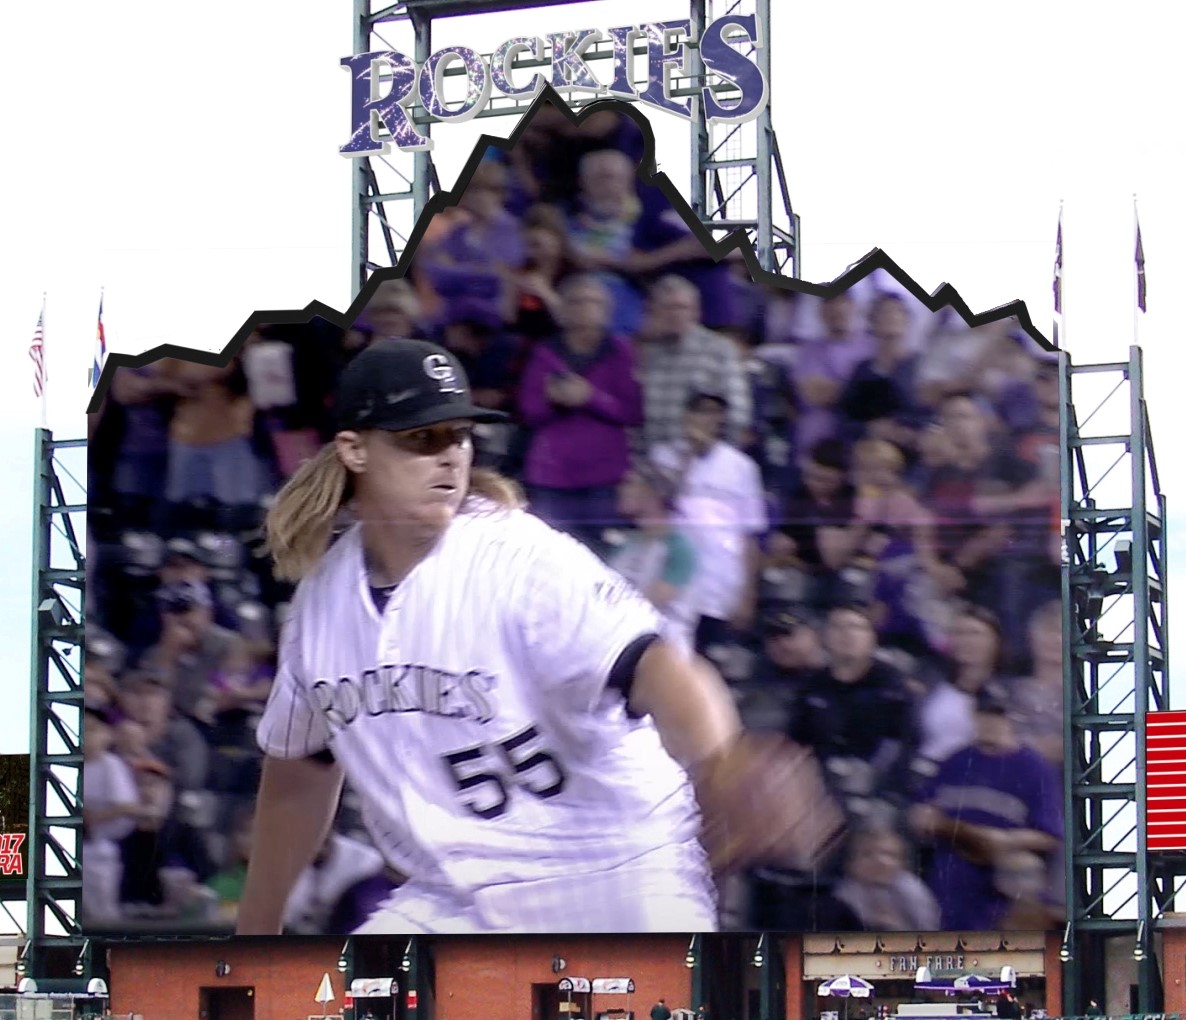 Colorado Rockies show off renderings of new, larger scoreboard